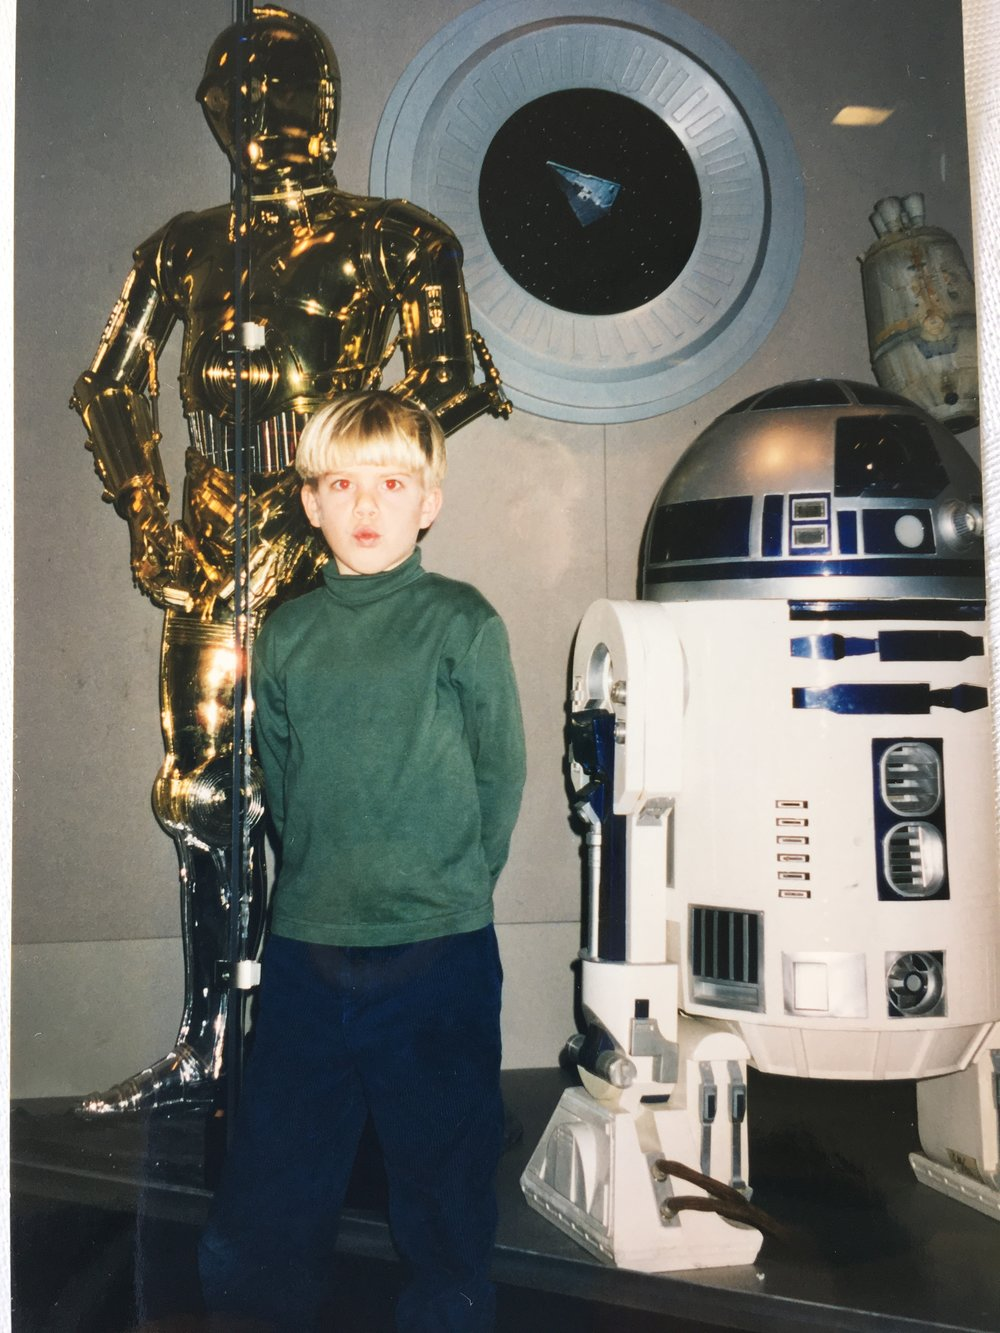 Little DJ Step visiting the Stars Wars Exhibit at the Smithsonian Air and Space Museum in Washington DC circa 1997